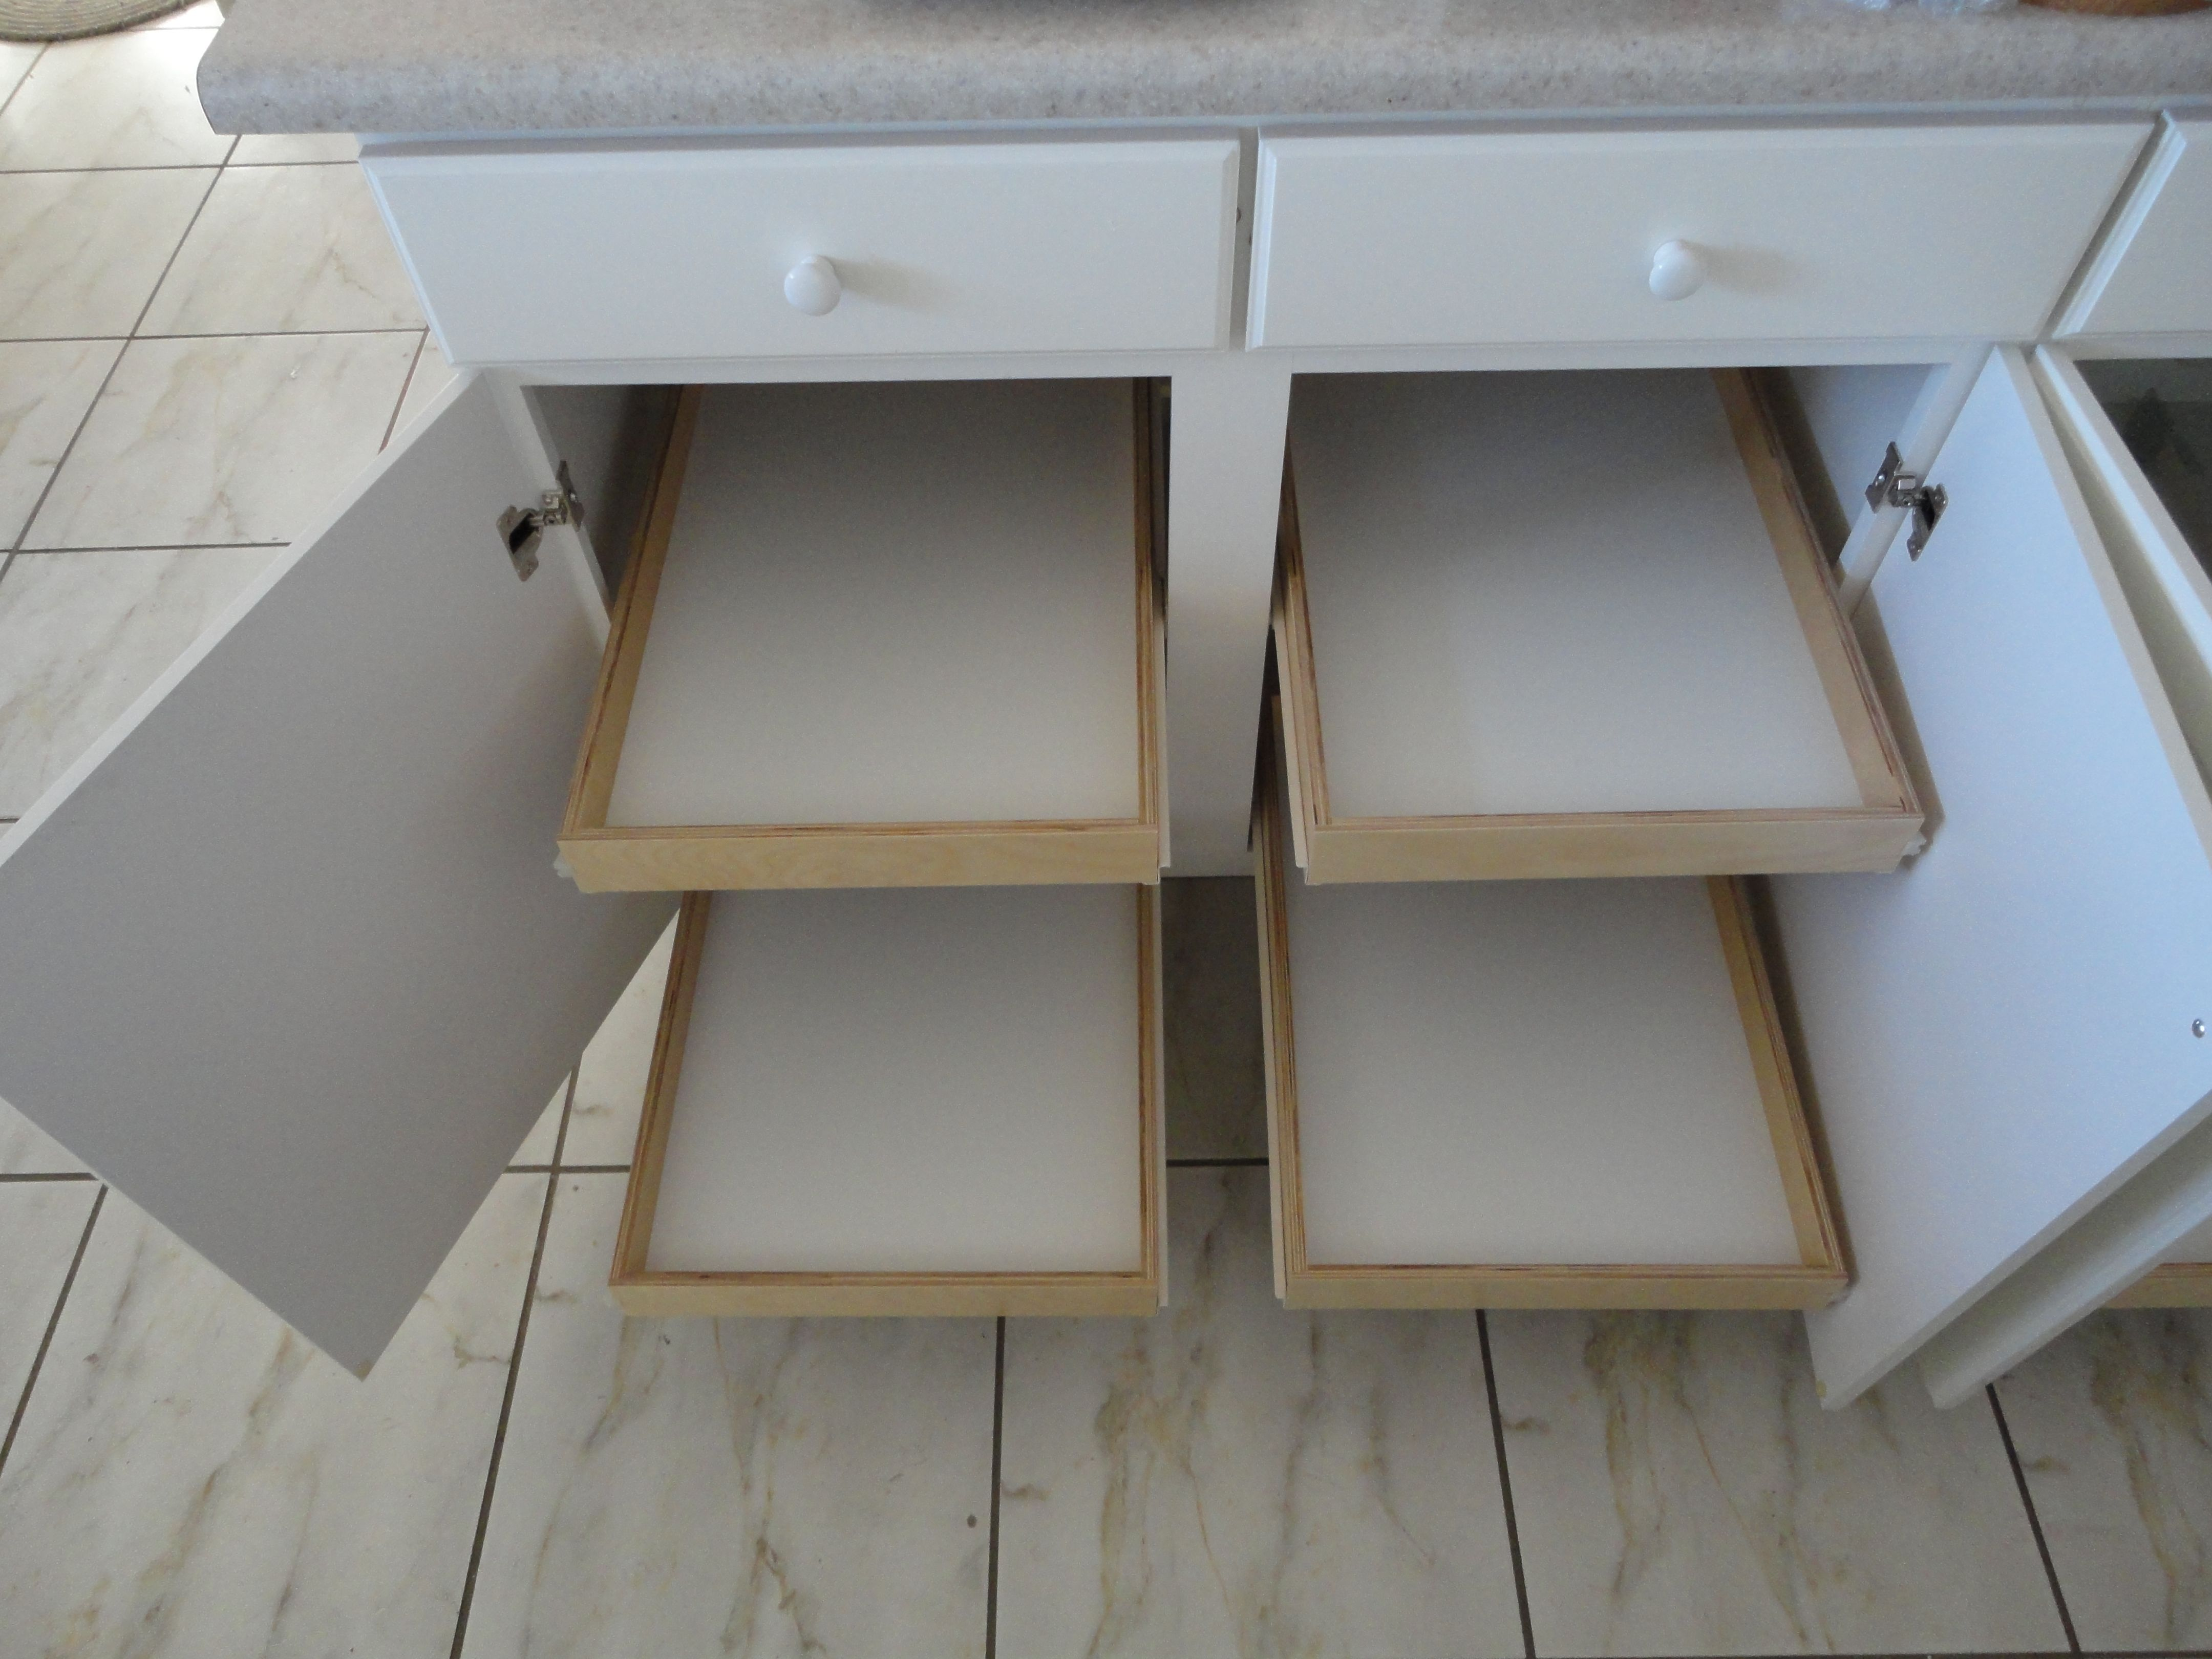 Pull Out Shelves By Slideoutshelvesllc Com In White Kitchen Cabinets Shelves Pull Out Shelves Kitchen Cabinets In Bathroom